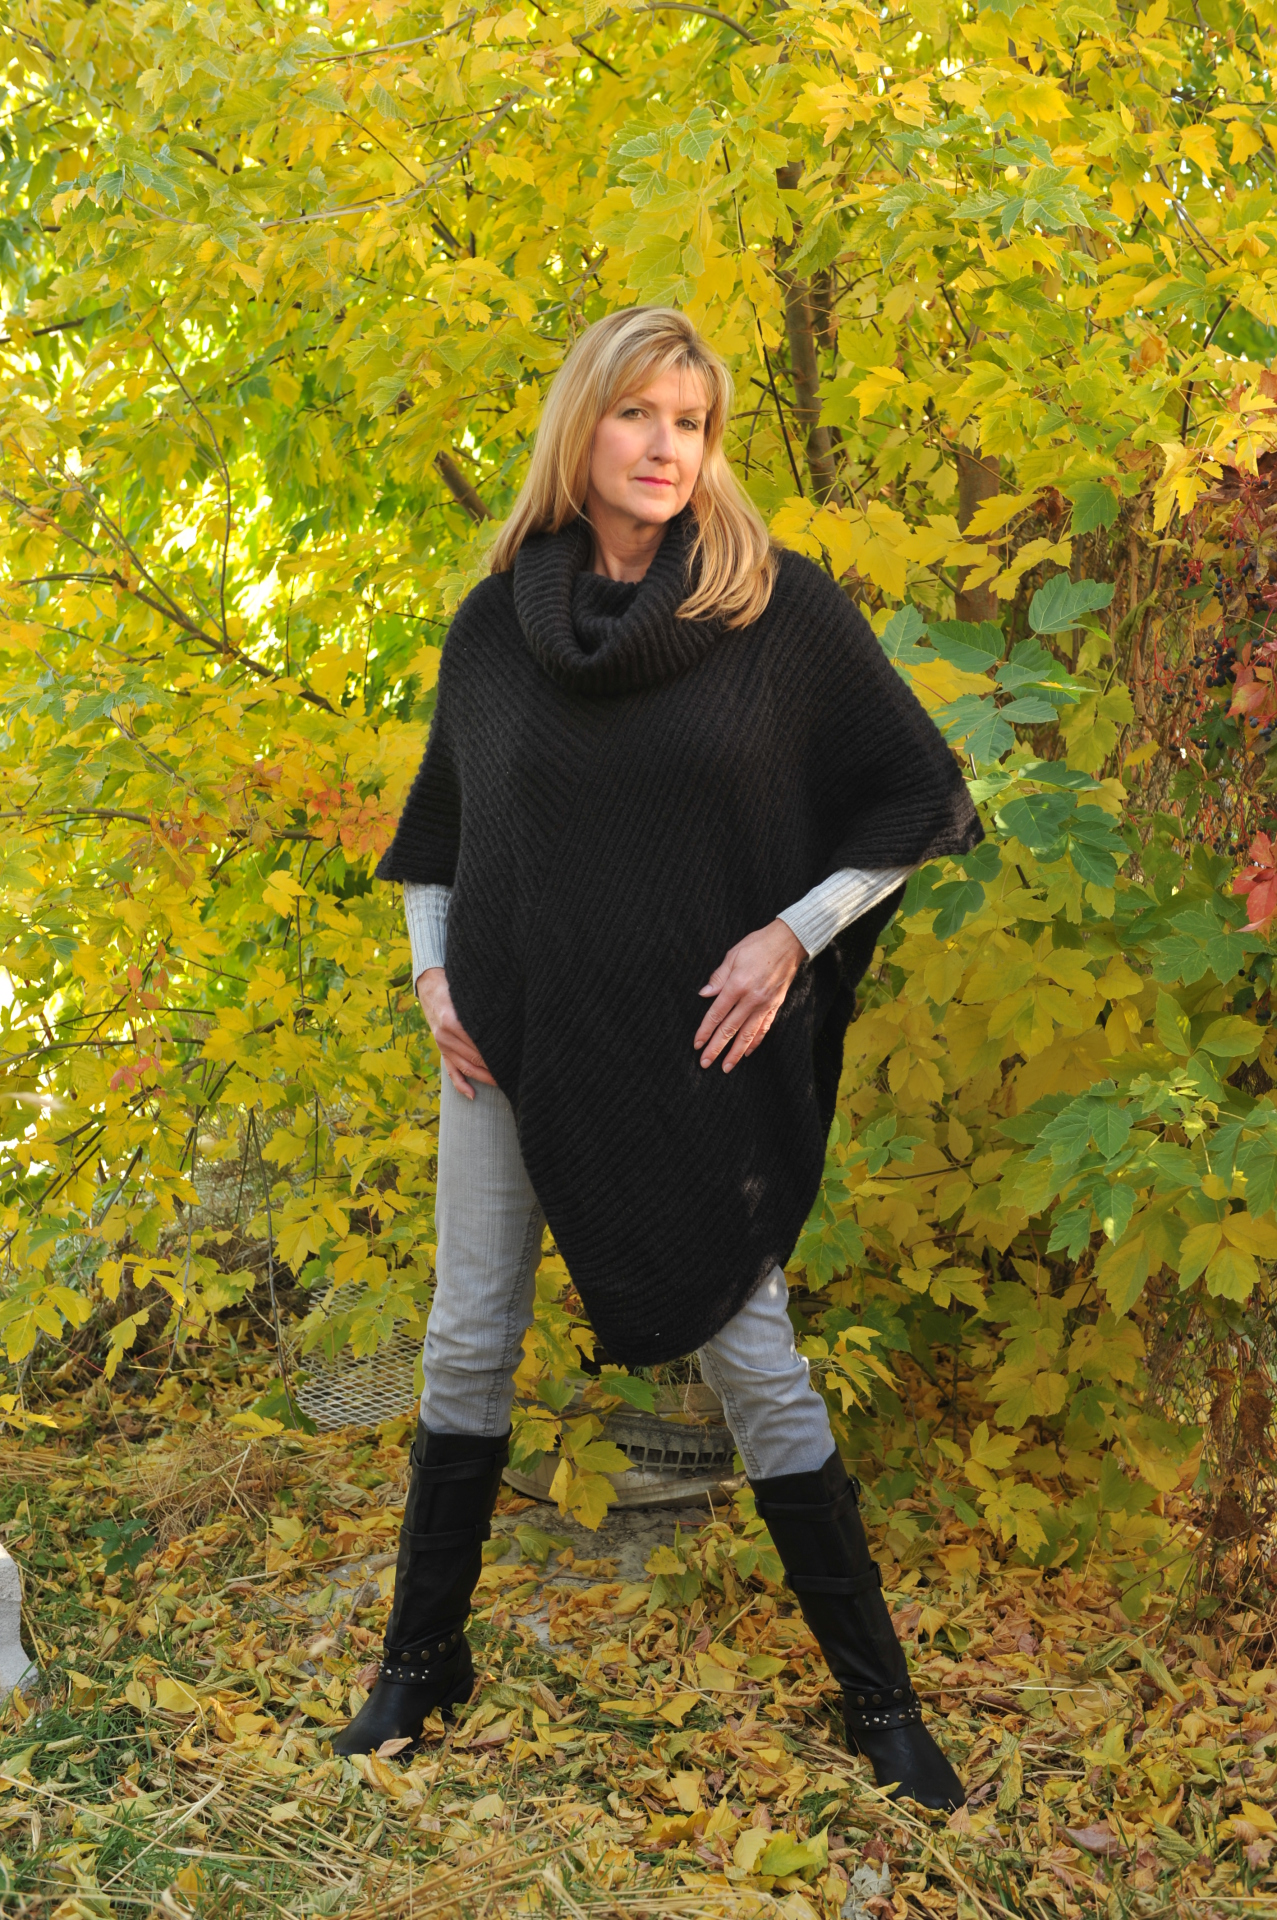 #K215BK - BLACK ITALIAN KNIT COWL PONCHO - $99.95     OUTLET SALE - $35 - ONE SIZE